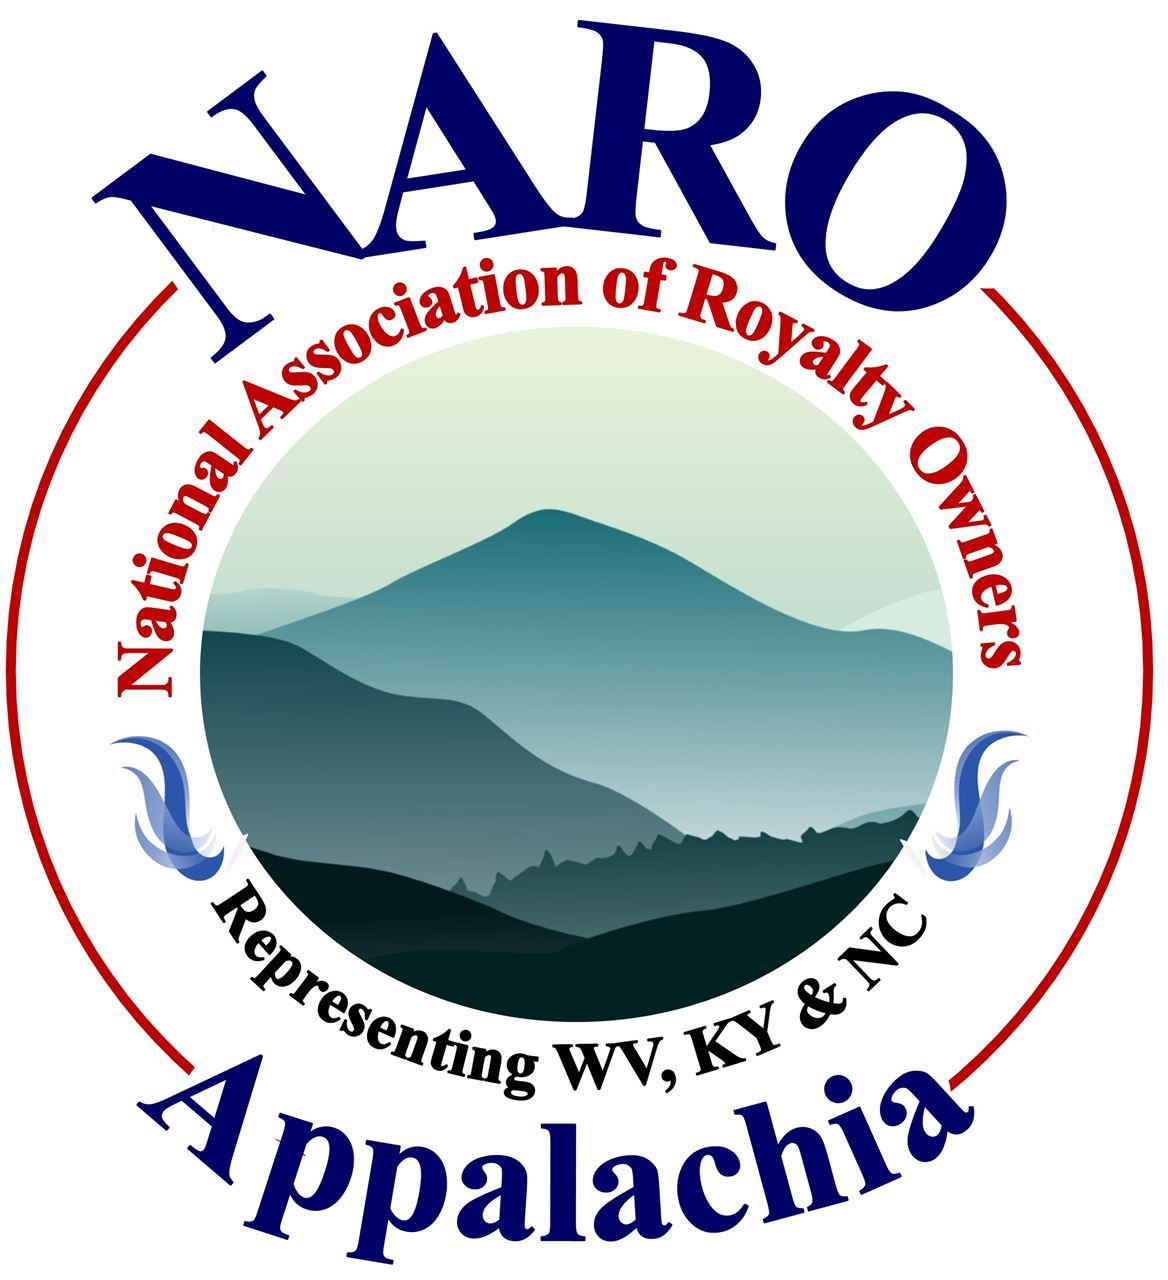 NARO - Appalachia Printable Trademark Application Form on immigration application form, germany application form, business loan application form, education application form, transportation application form, corporate application form, goodwill application form, nomination application form, property application form, llc application form, real estate application form, patent application form, title application form, government application form, restaurant application form, business name application form, security application form, sports application form, software application form, finance application form,